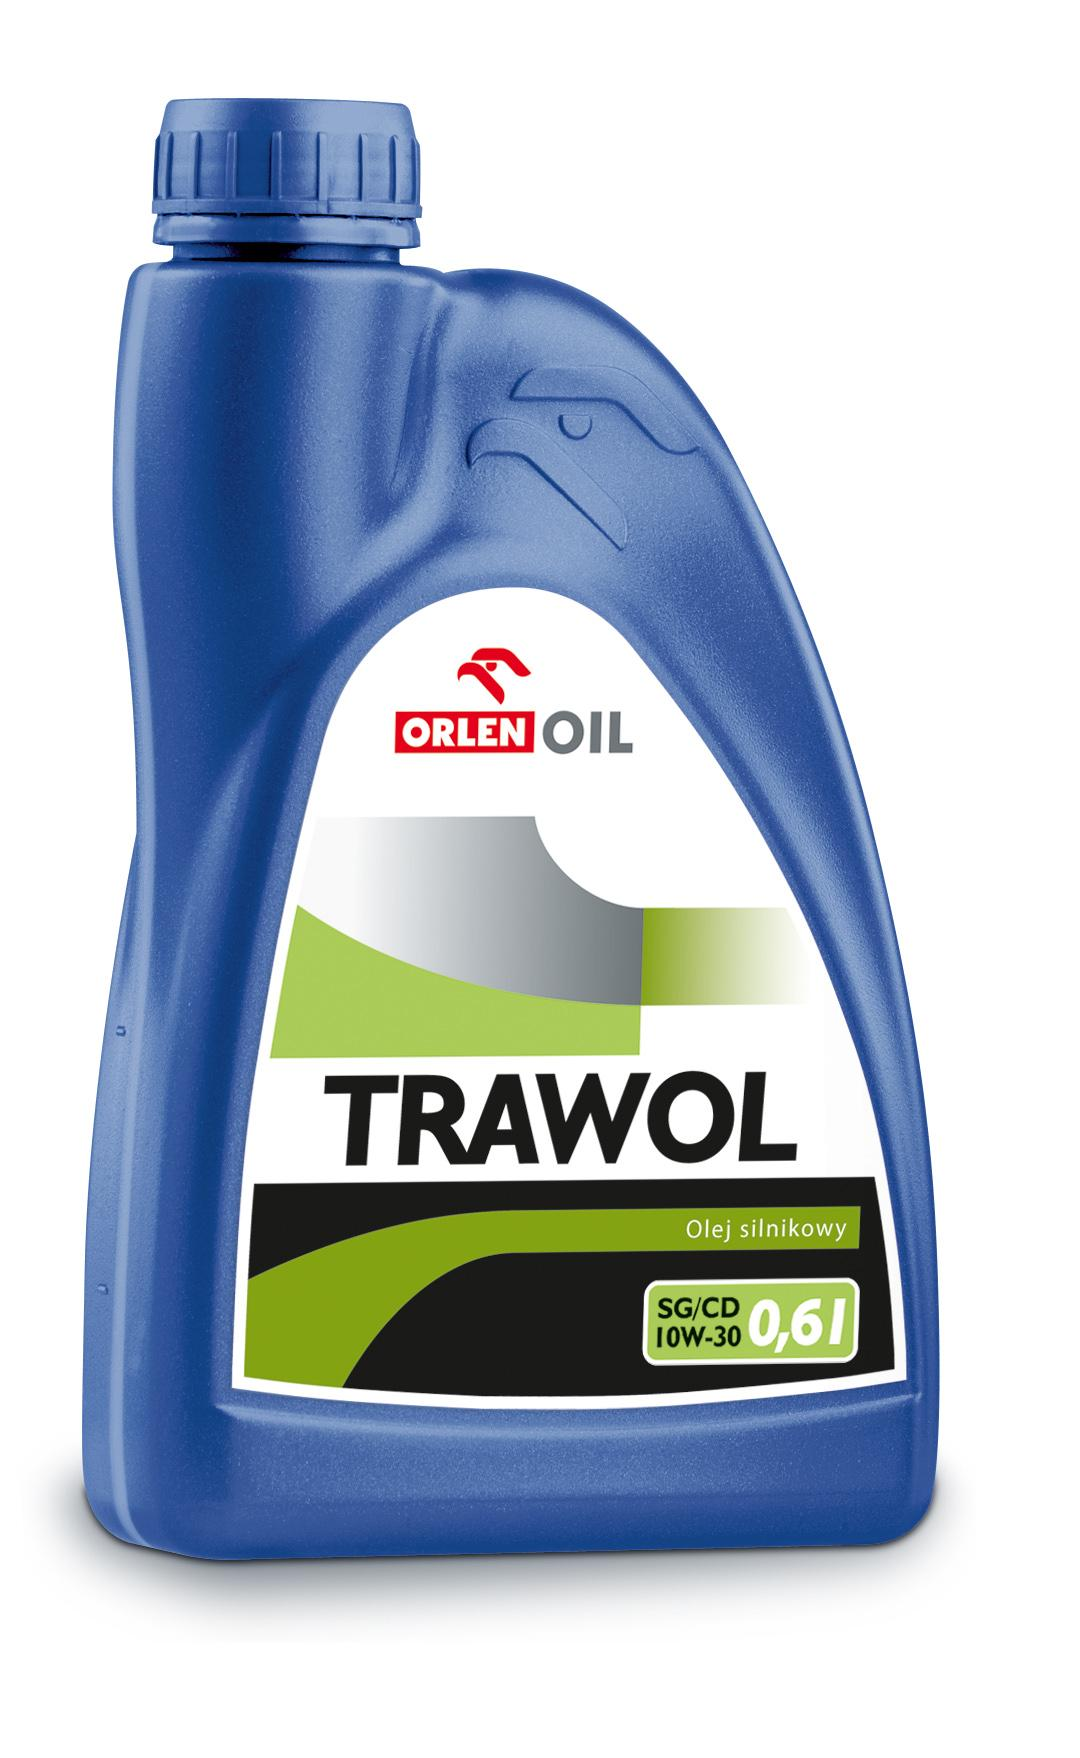 ORLEN OIL TRAWOL SG/CD 10W/30  0,6L